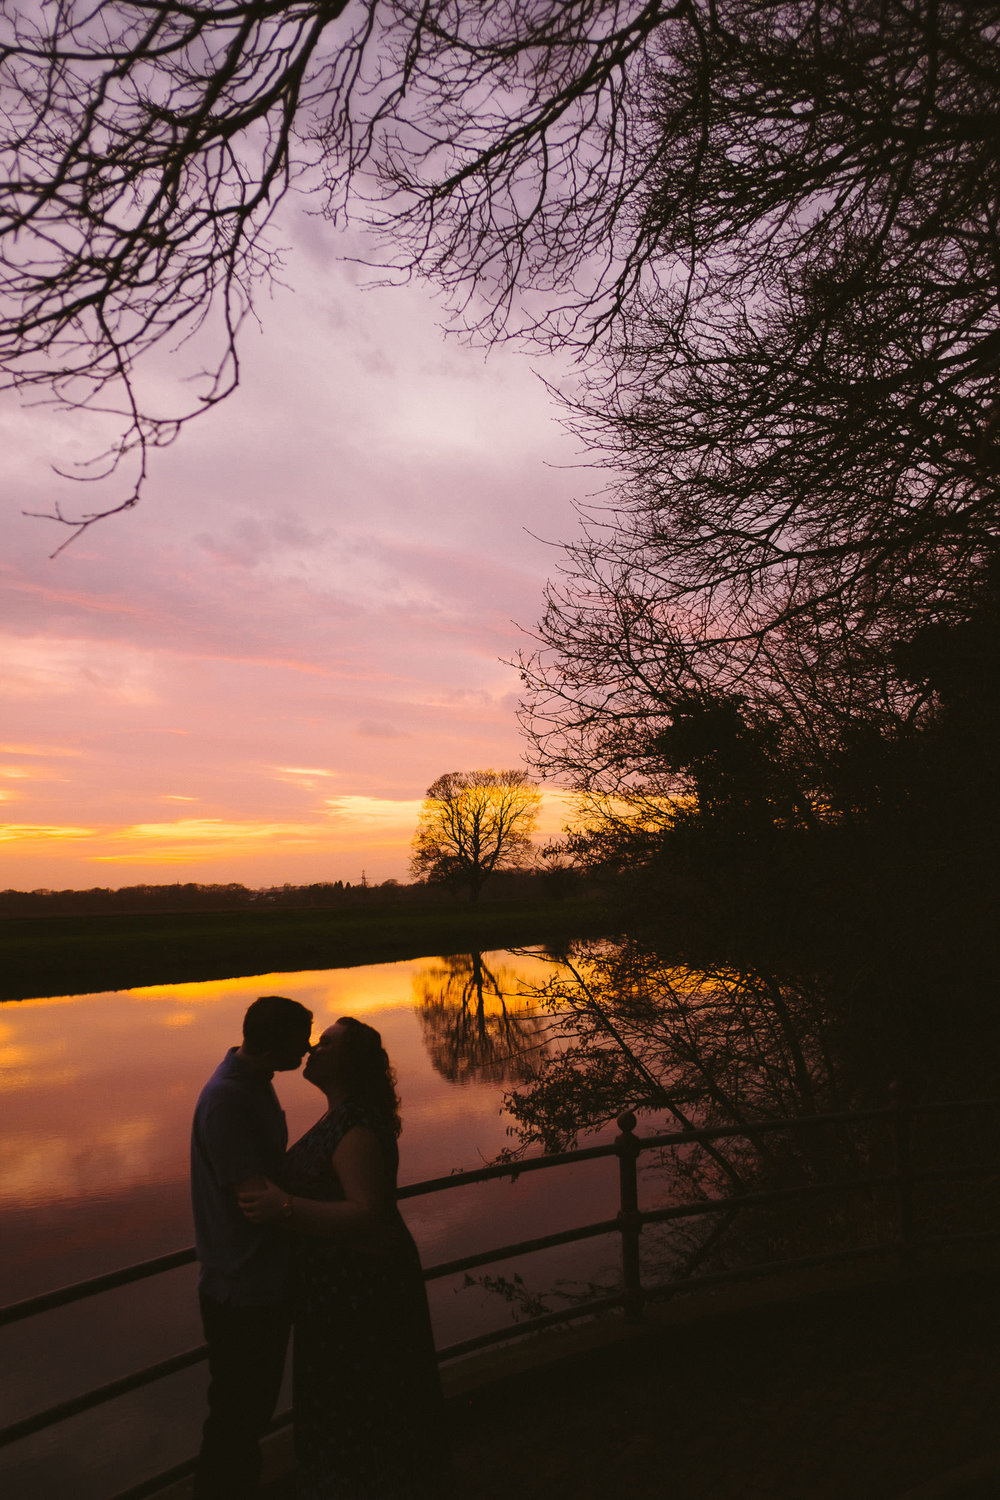 Silhouettes of a couple kissing by a river with a purple and gold sunset in the background